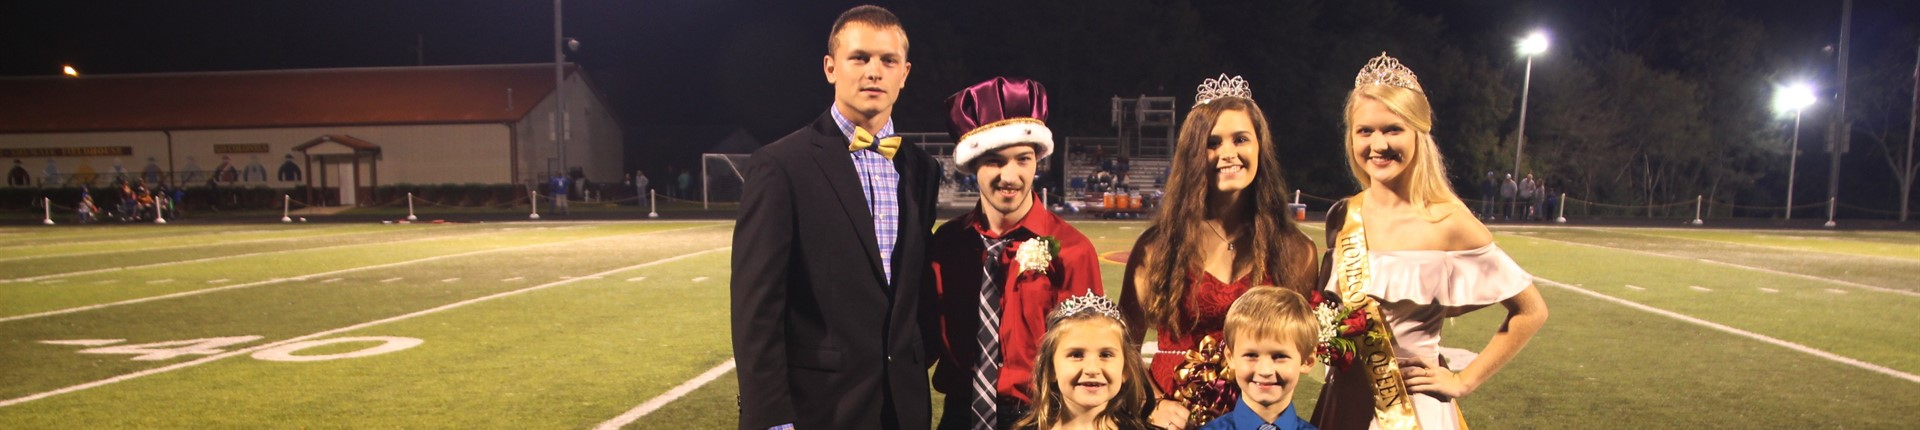 Homecoming King and Queen, Donovan Hollar and Karly Black